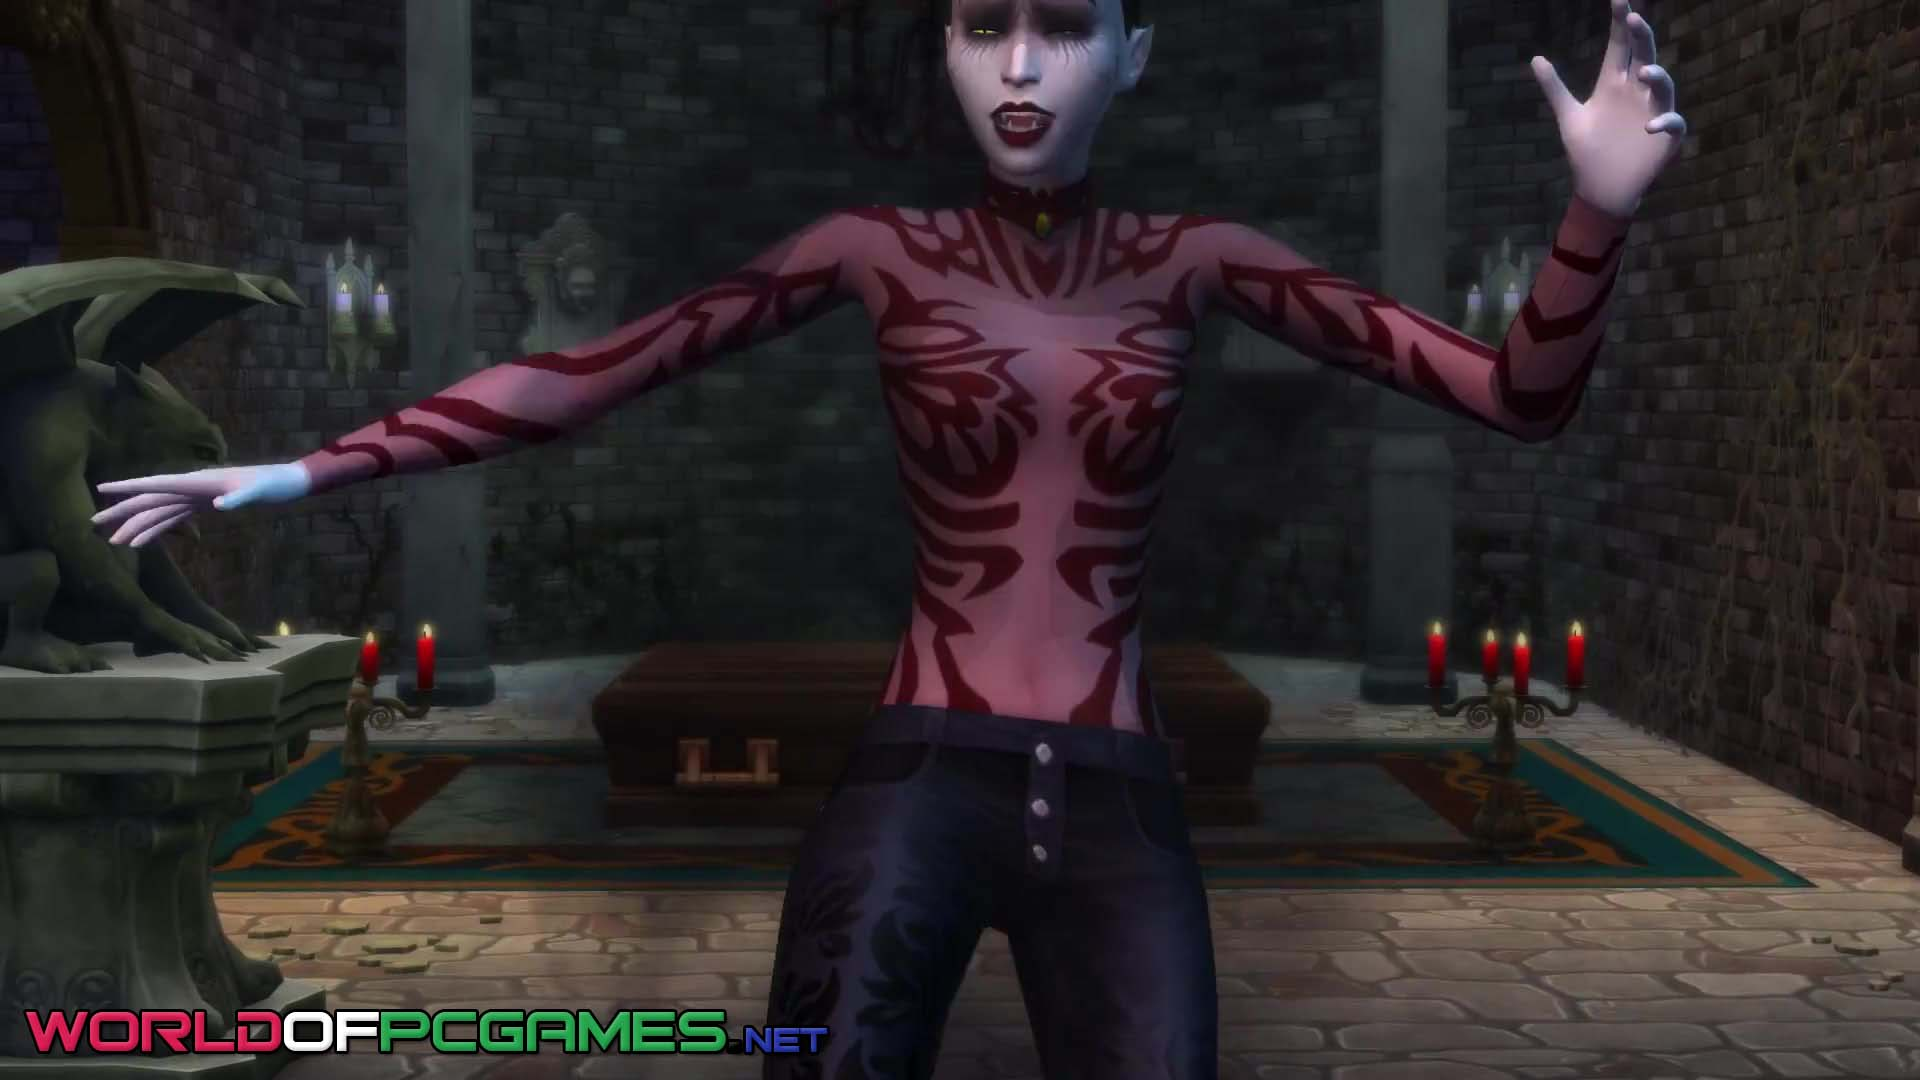 The SIMS 4 Vampires Free Download By Worldofpcgames.net